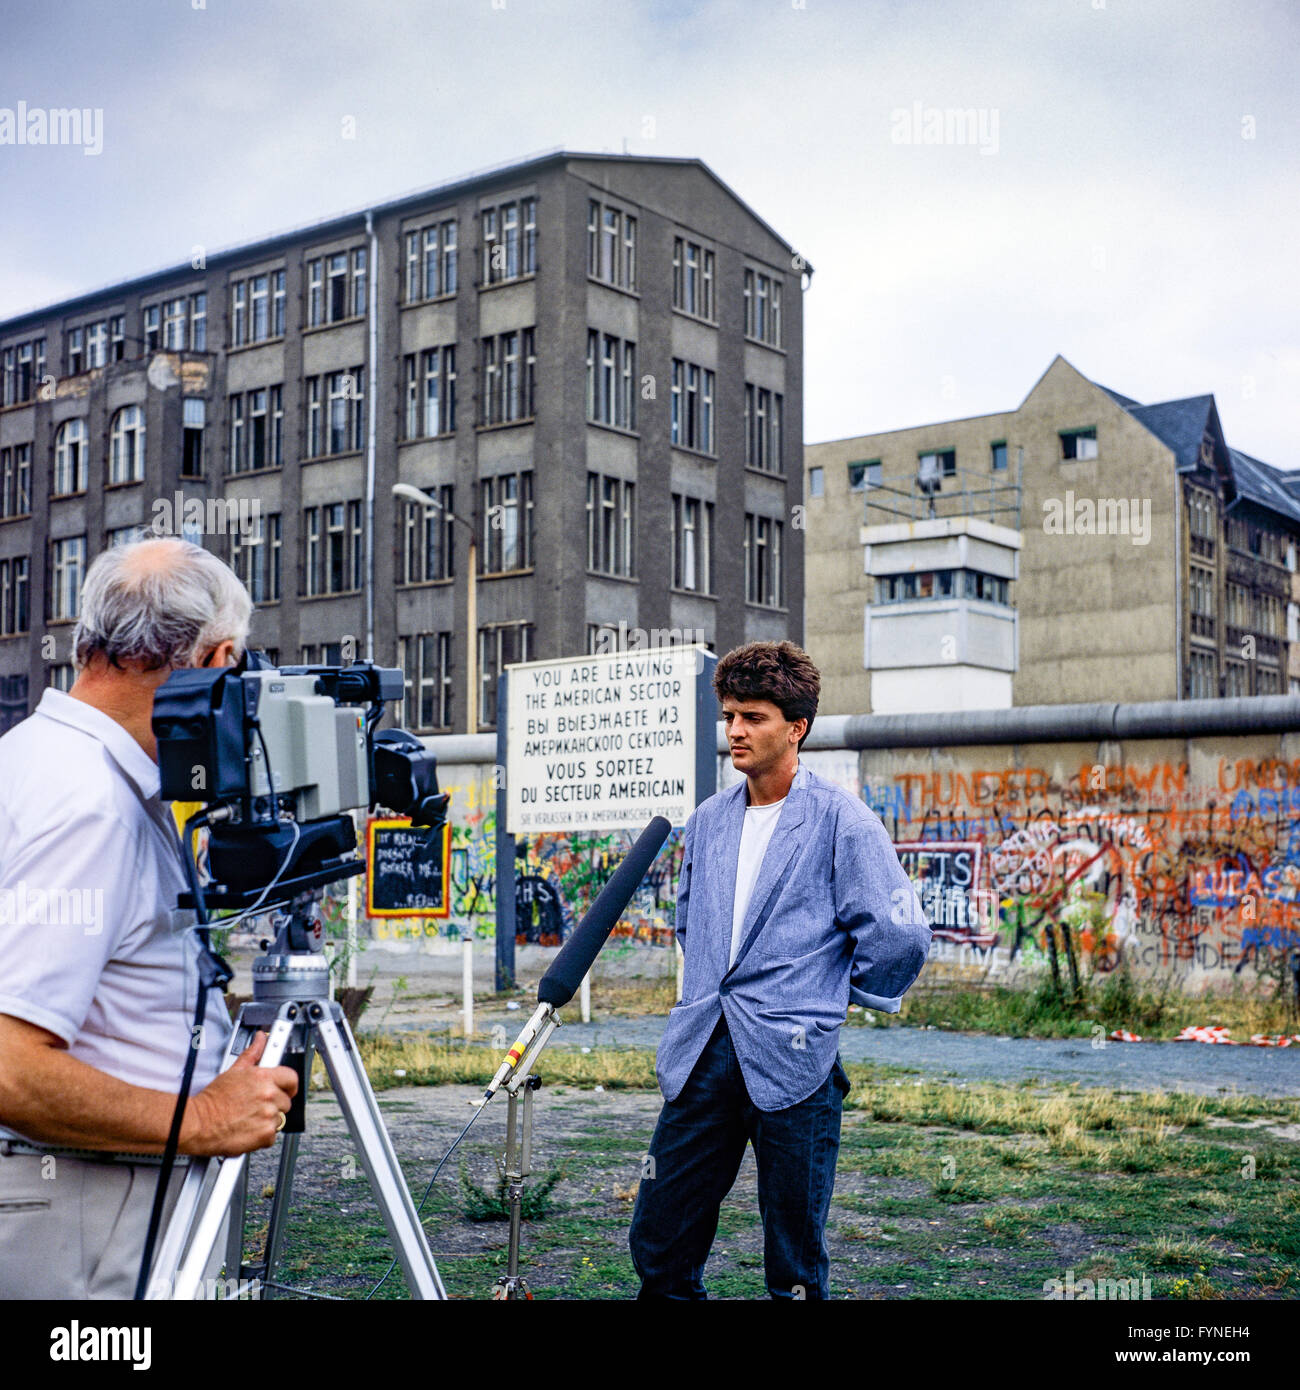 August 1986, TV interview of a former East soldier, Berlin Wall graffitis, East Berlin watchtower, Zimmerstrasse - Stock Image